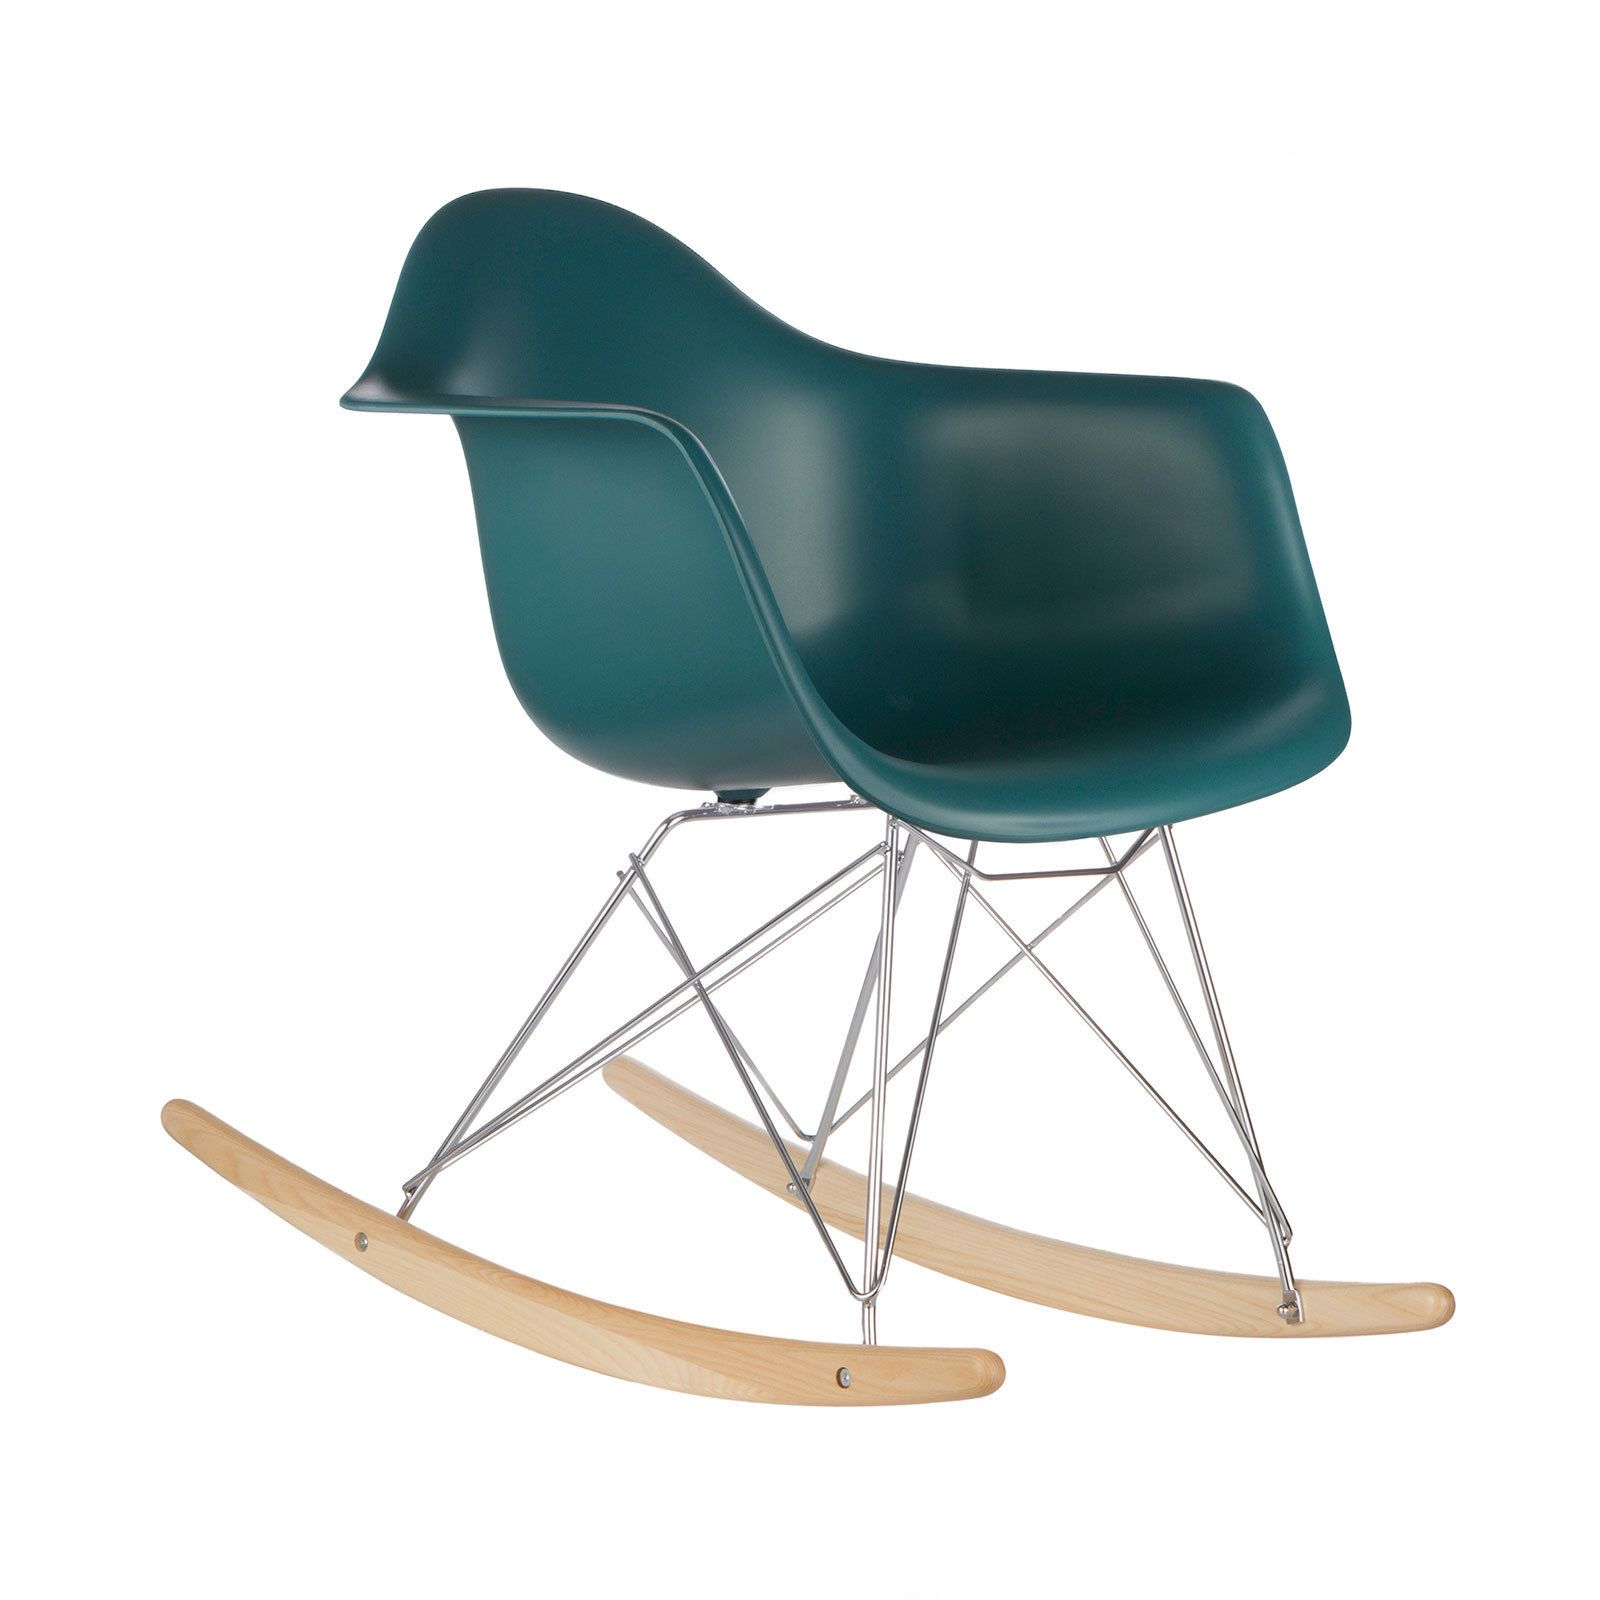 Chase the doldrums away with the Edgemond Eames style rocker chair